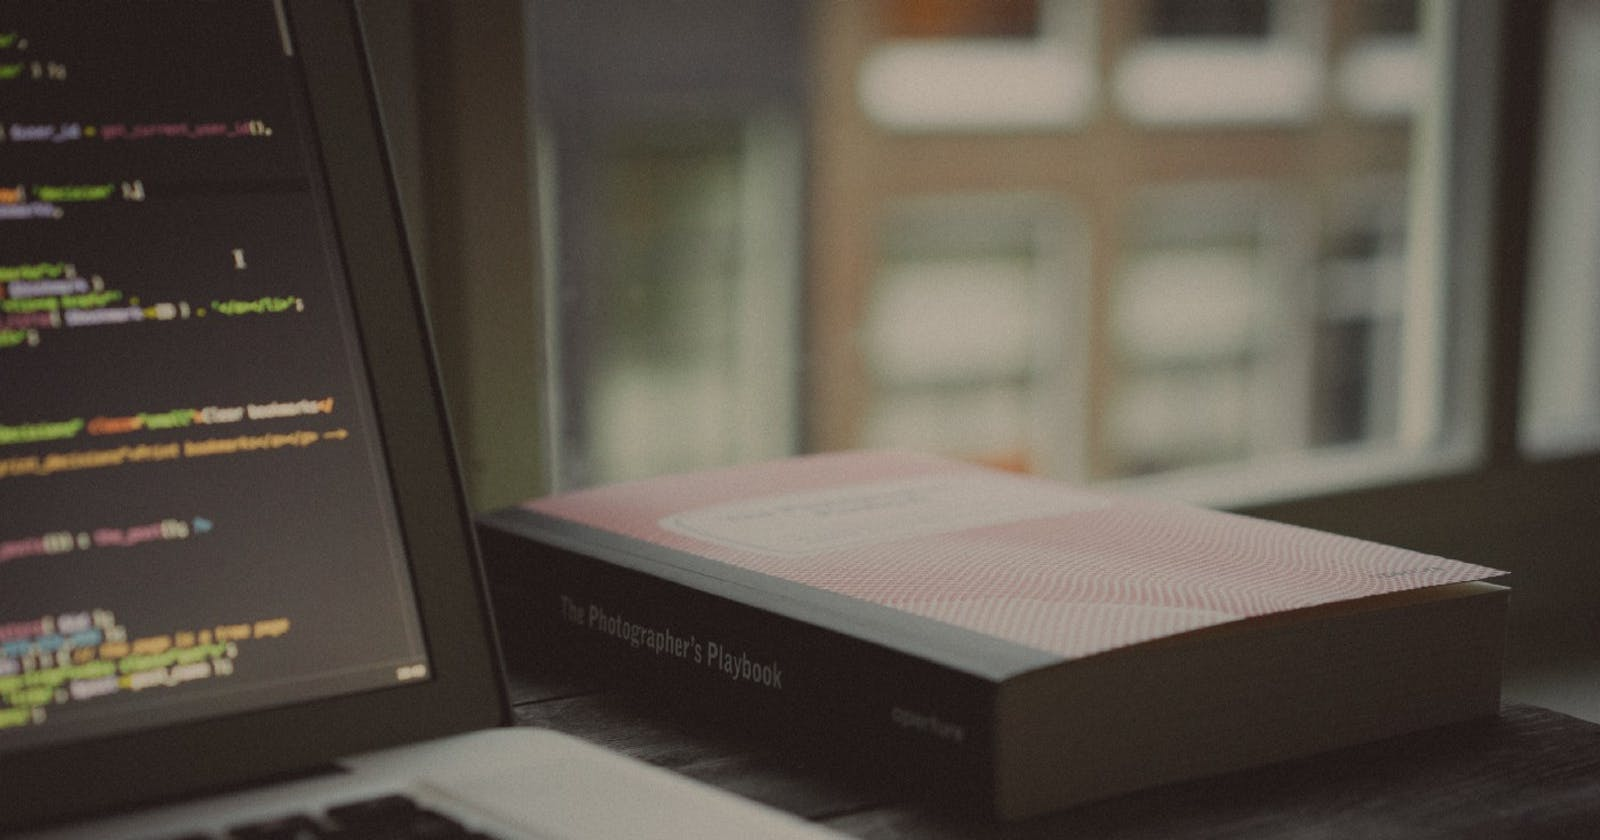 7 Essential Books for Programmers